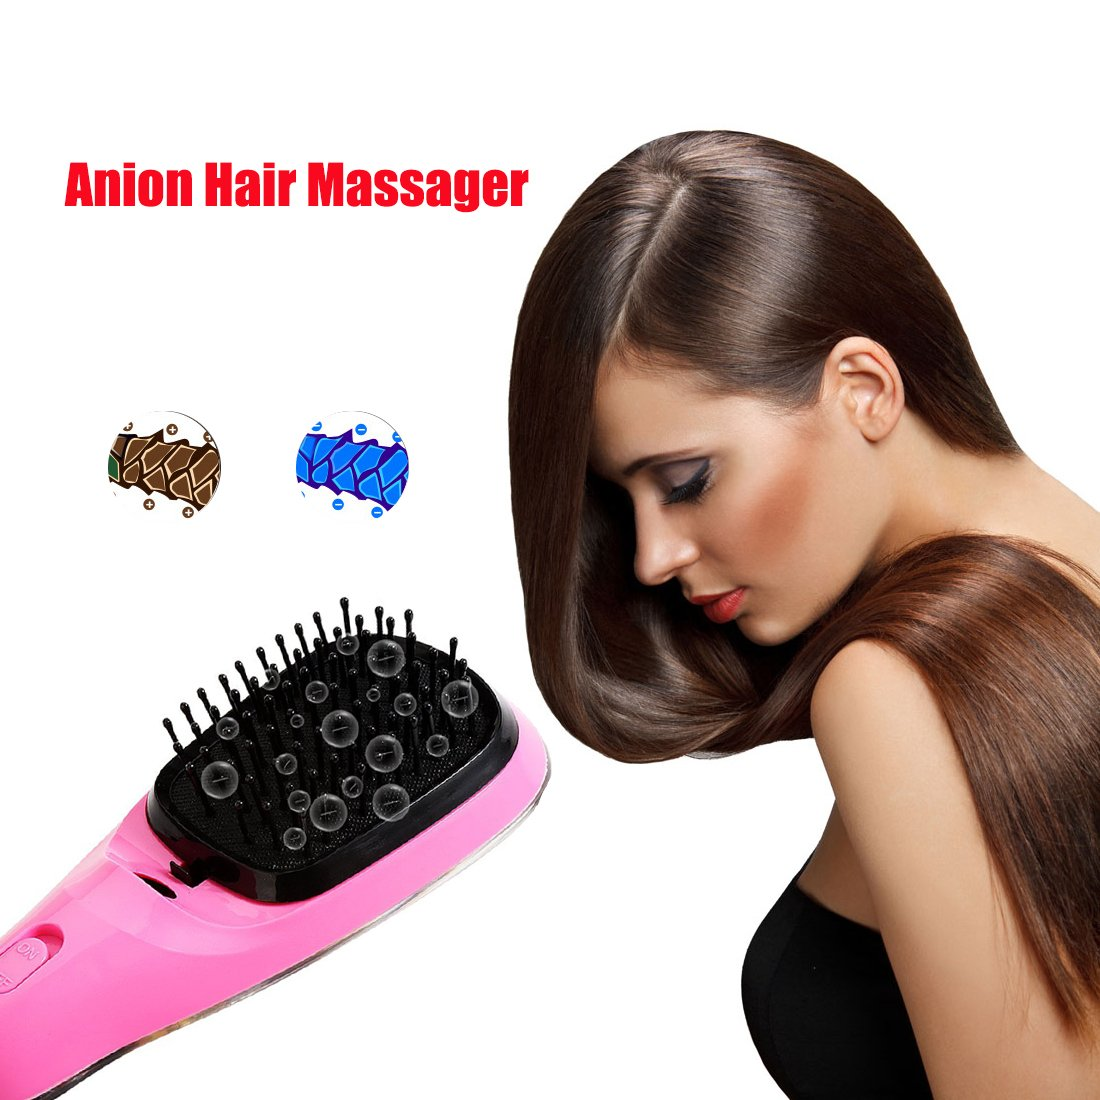 Lookathot Mini Portable Hair Straightener Brush Detangling USB Rechargeable Hair Styling Comb Anion Hair Massager Travel Light Weight (Black) by Lookathot (Image #6)